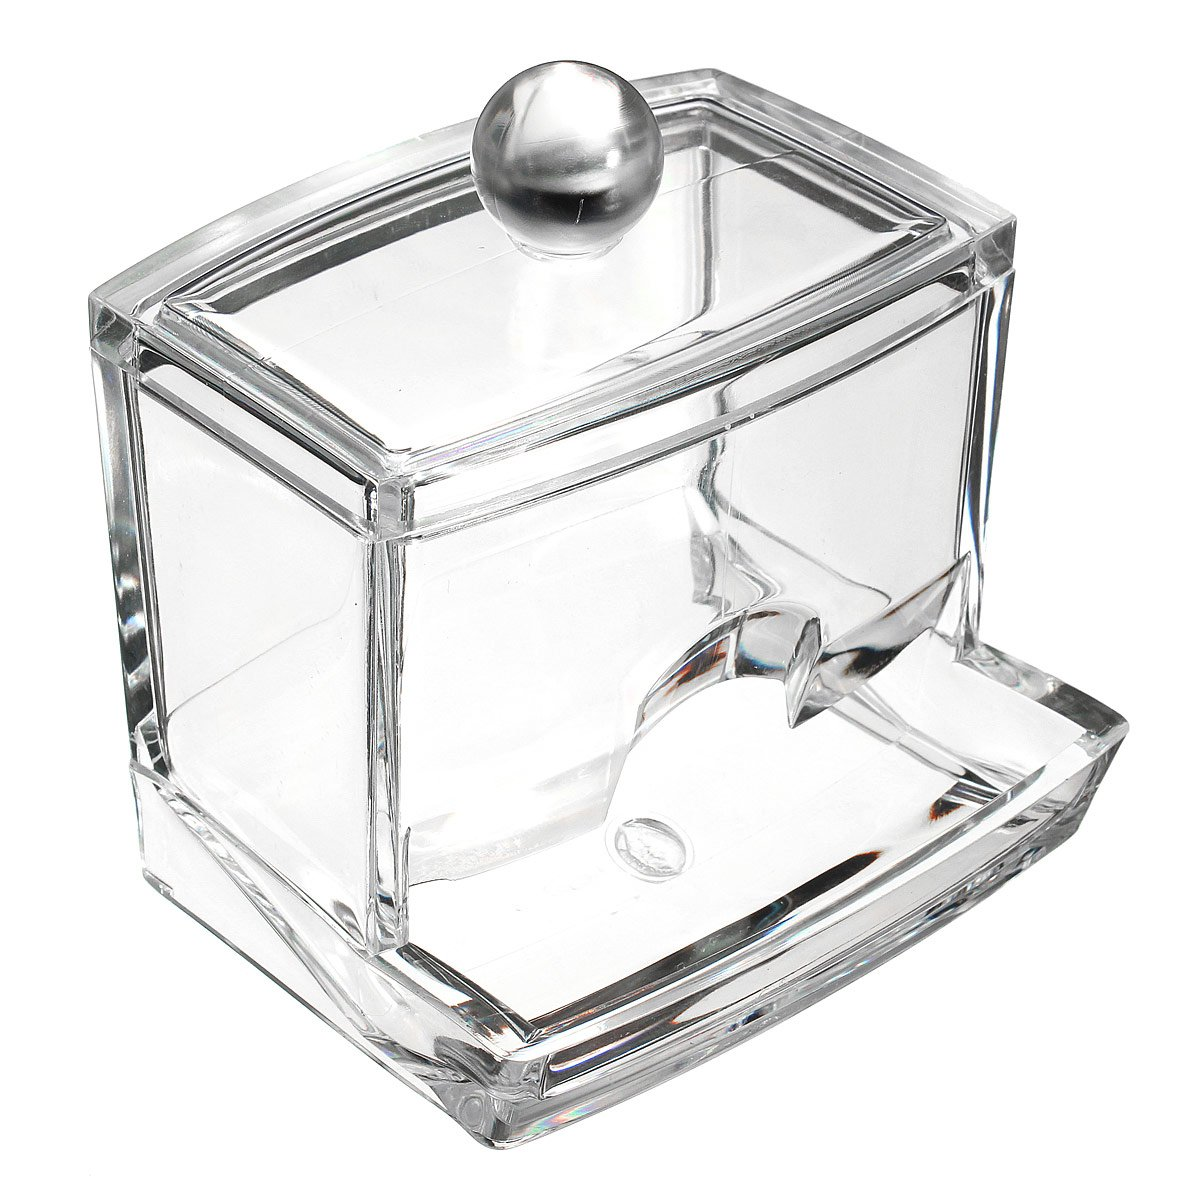 LUCKYFINE Cosmetic Q-tip Cotton Swabs Acrylic Holder Storage Box KINGSO Co. LTD. UKAIALIDTV2535